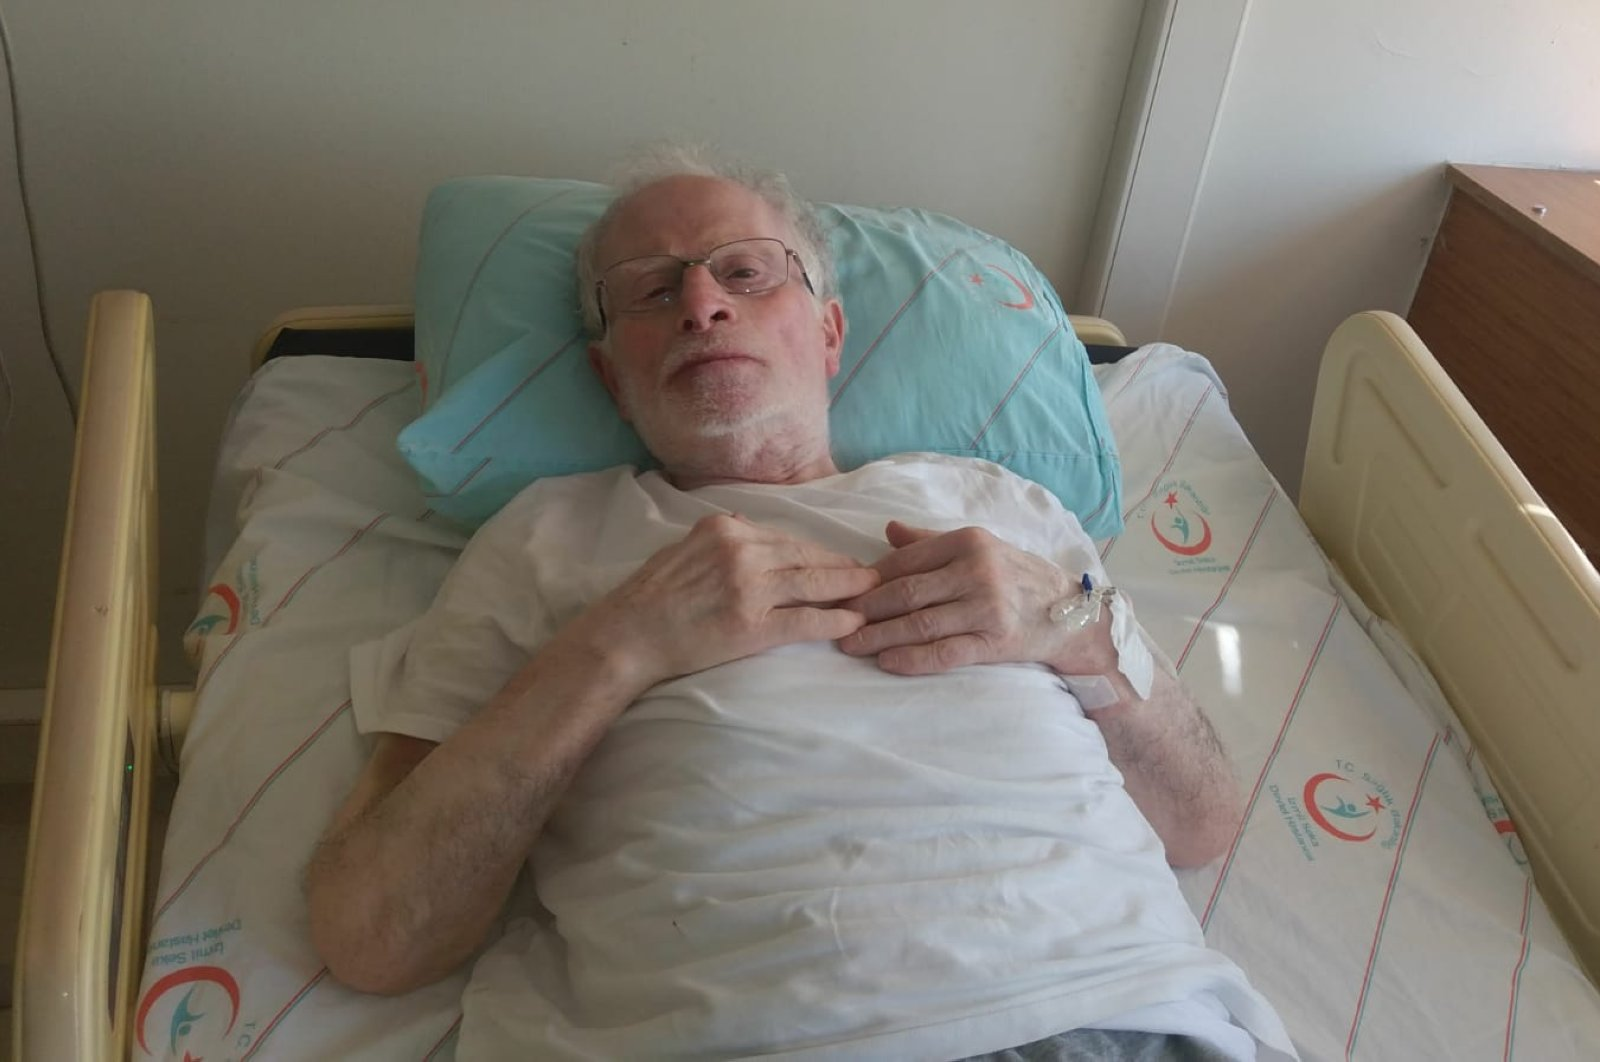 Mustafa Memeşil, 68, rests in a hospital bed after being taken out of intensive care, Izmit, Turkey, June 1, 2020. (AA Photo)